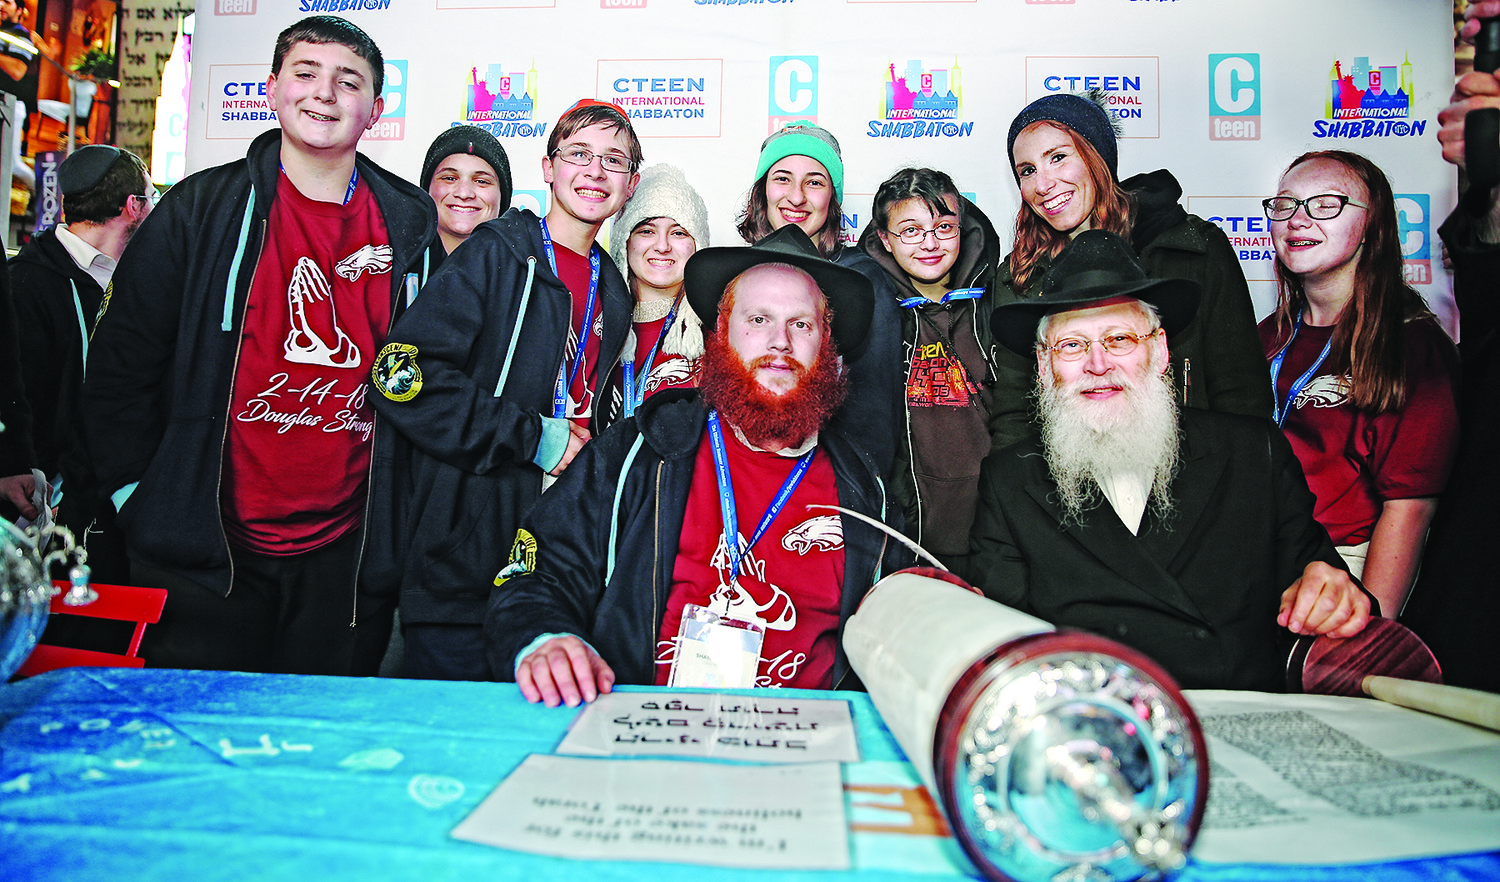 Rabbi Shaya Denburg, center with red beard, Rabbi Moshe Klein, and some of the survivors of Parkland, Florida school shooting.